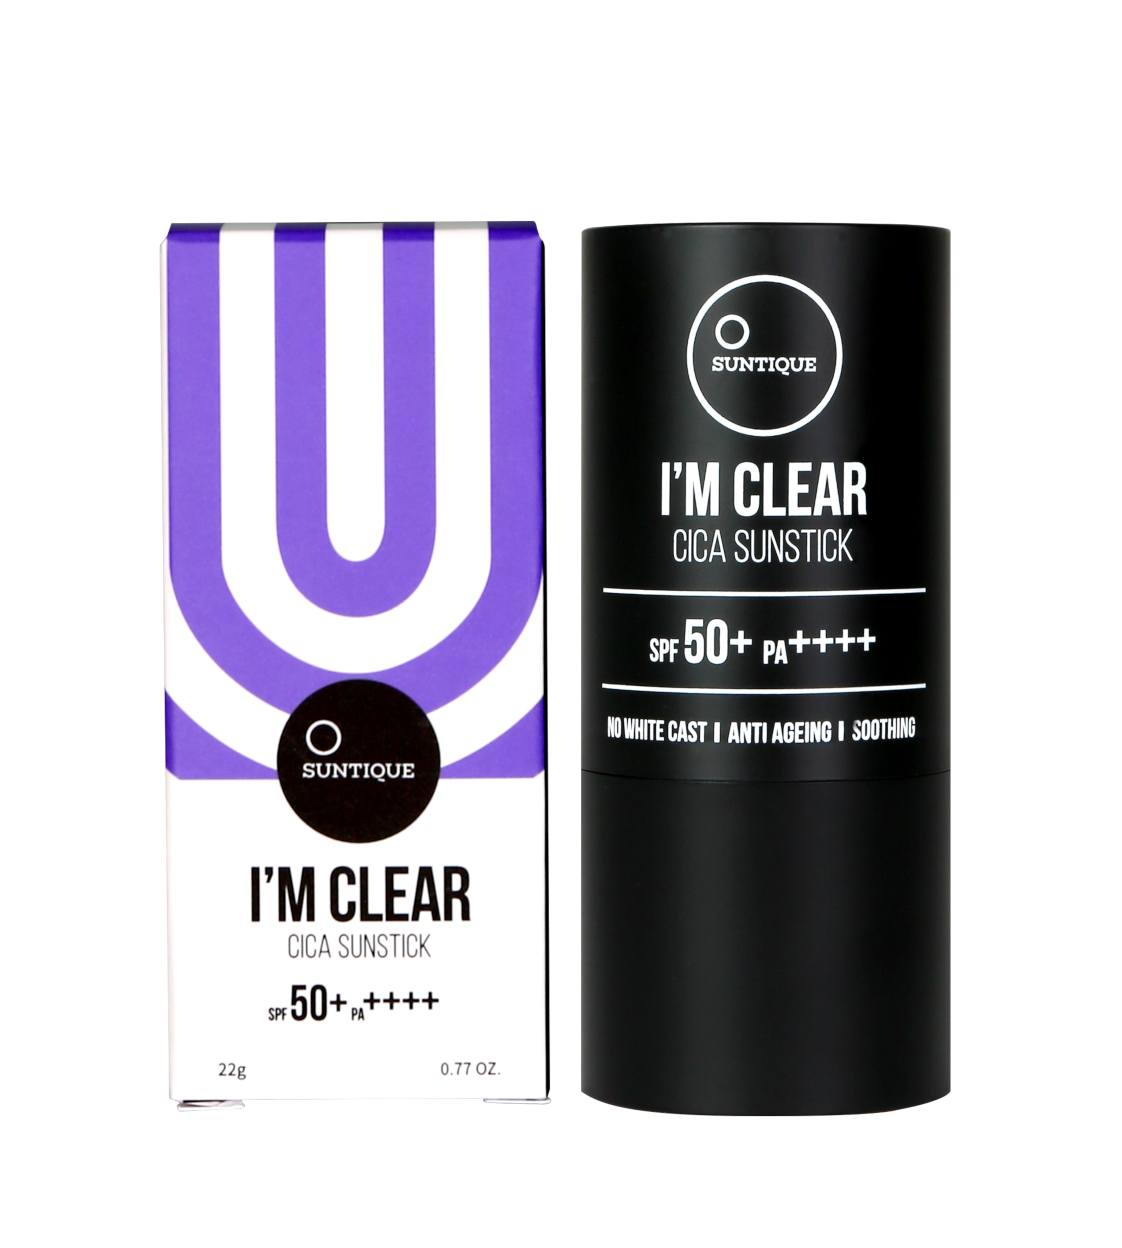 Health & Beauty > Personal Care > Cosmetics > Makeup > Face Makeup > Foundations & Concealers - I'm Clear Cica Sunstick SPF50+/PA++++ Krem BB W Sztyfcie 22 G